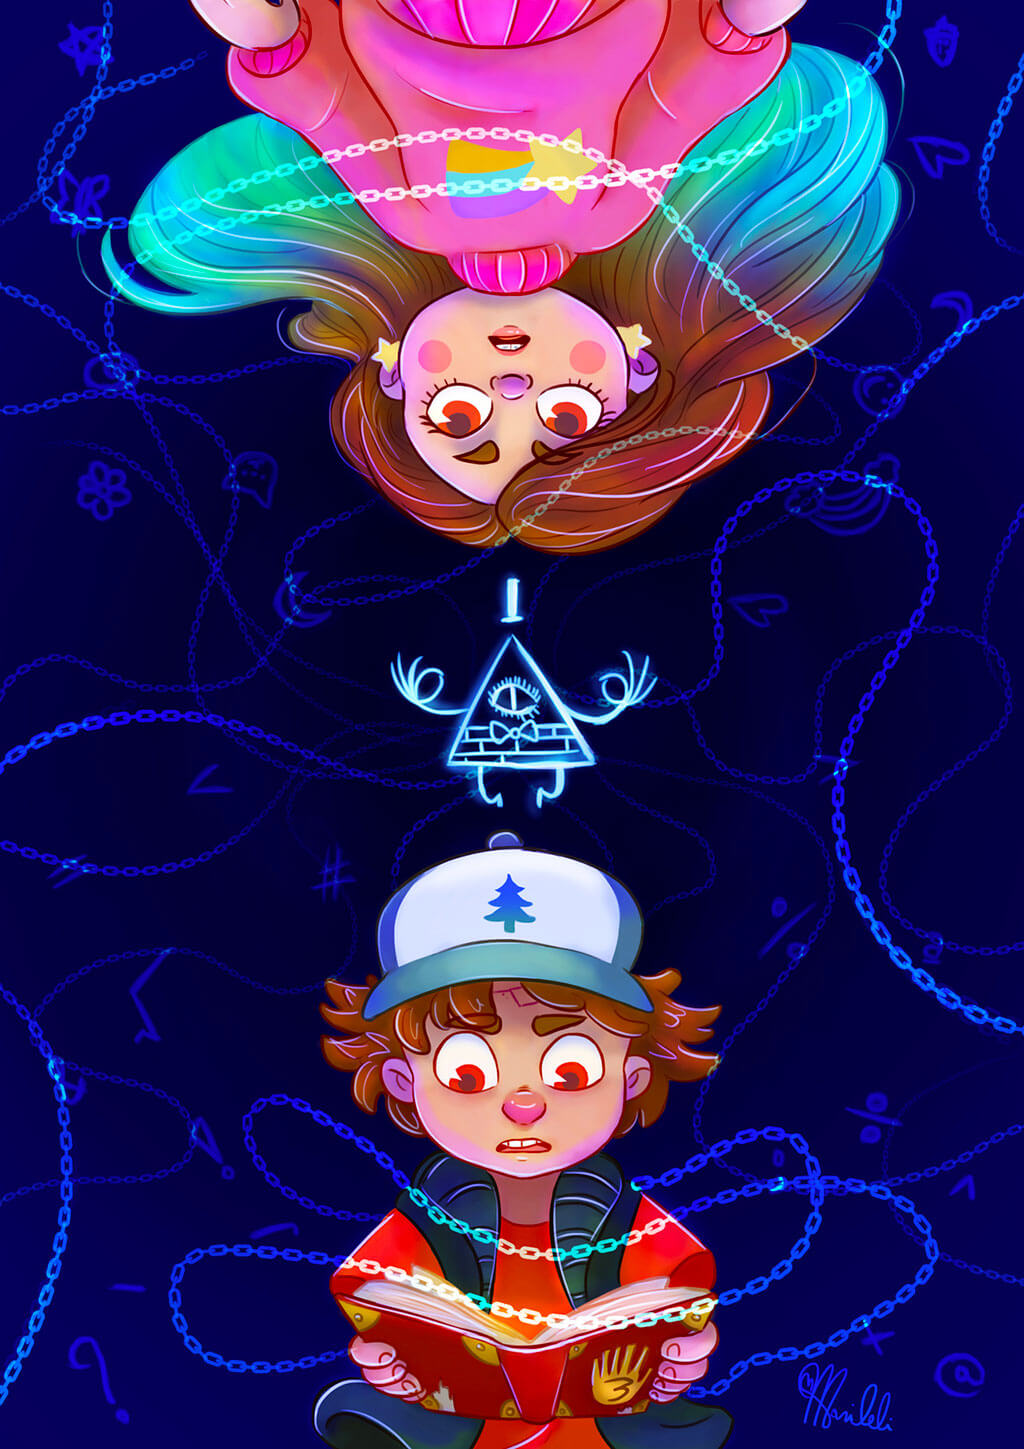 Gravity Falls fan art by Mariana Nicoleli